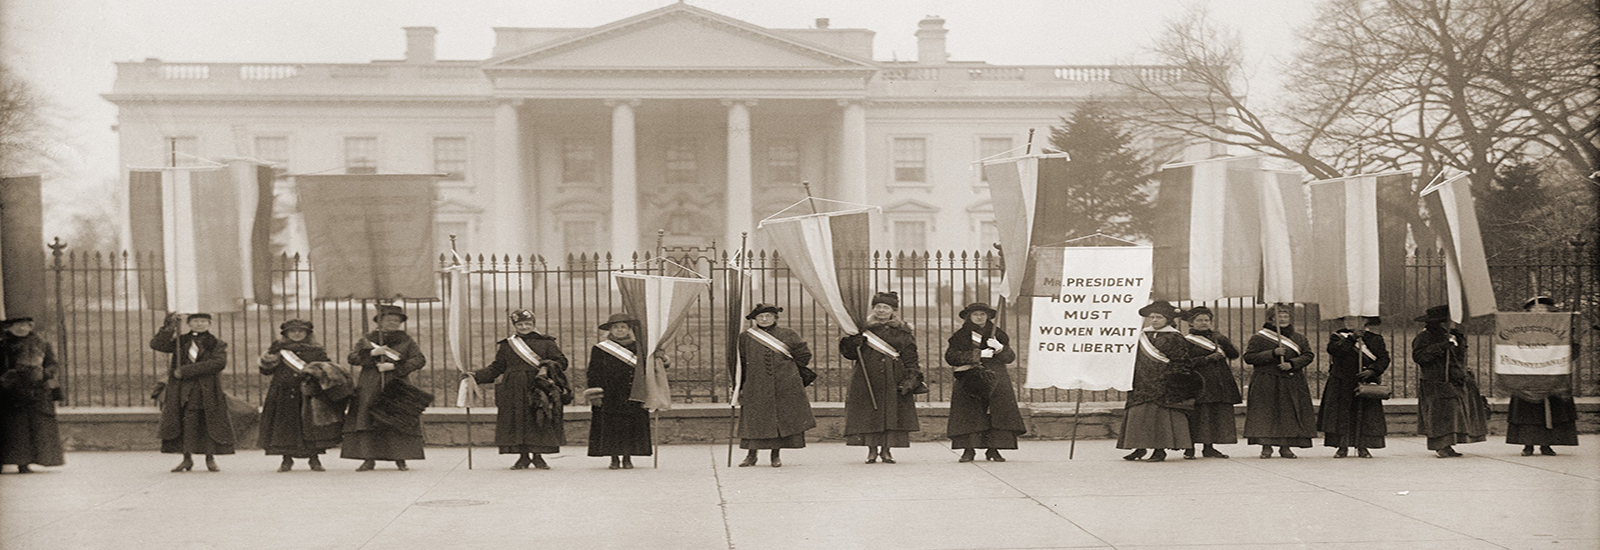 A historical stock photo of women suffragists protesting outside of the White House.